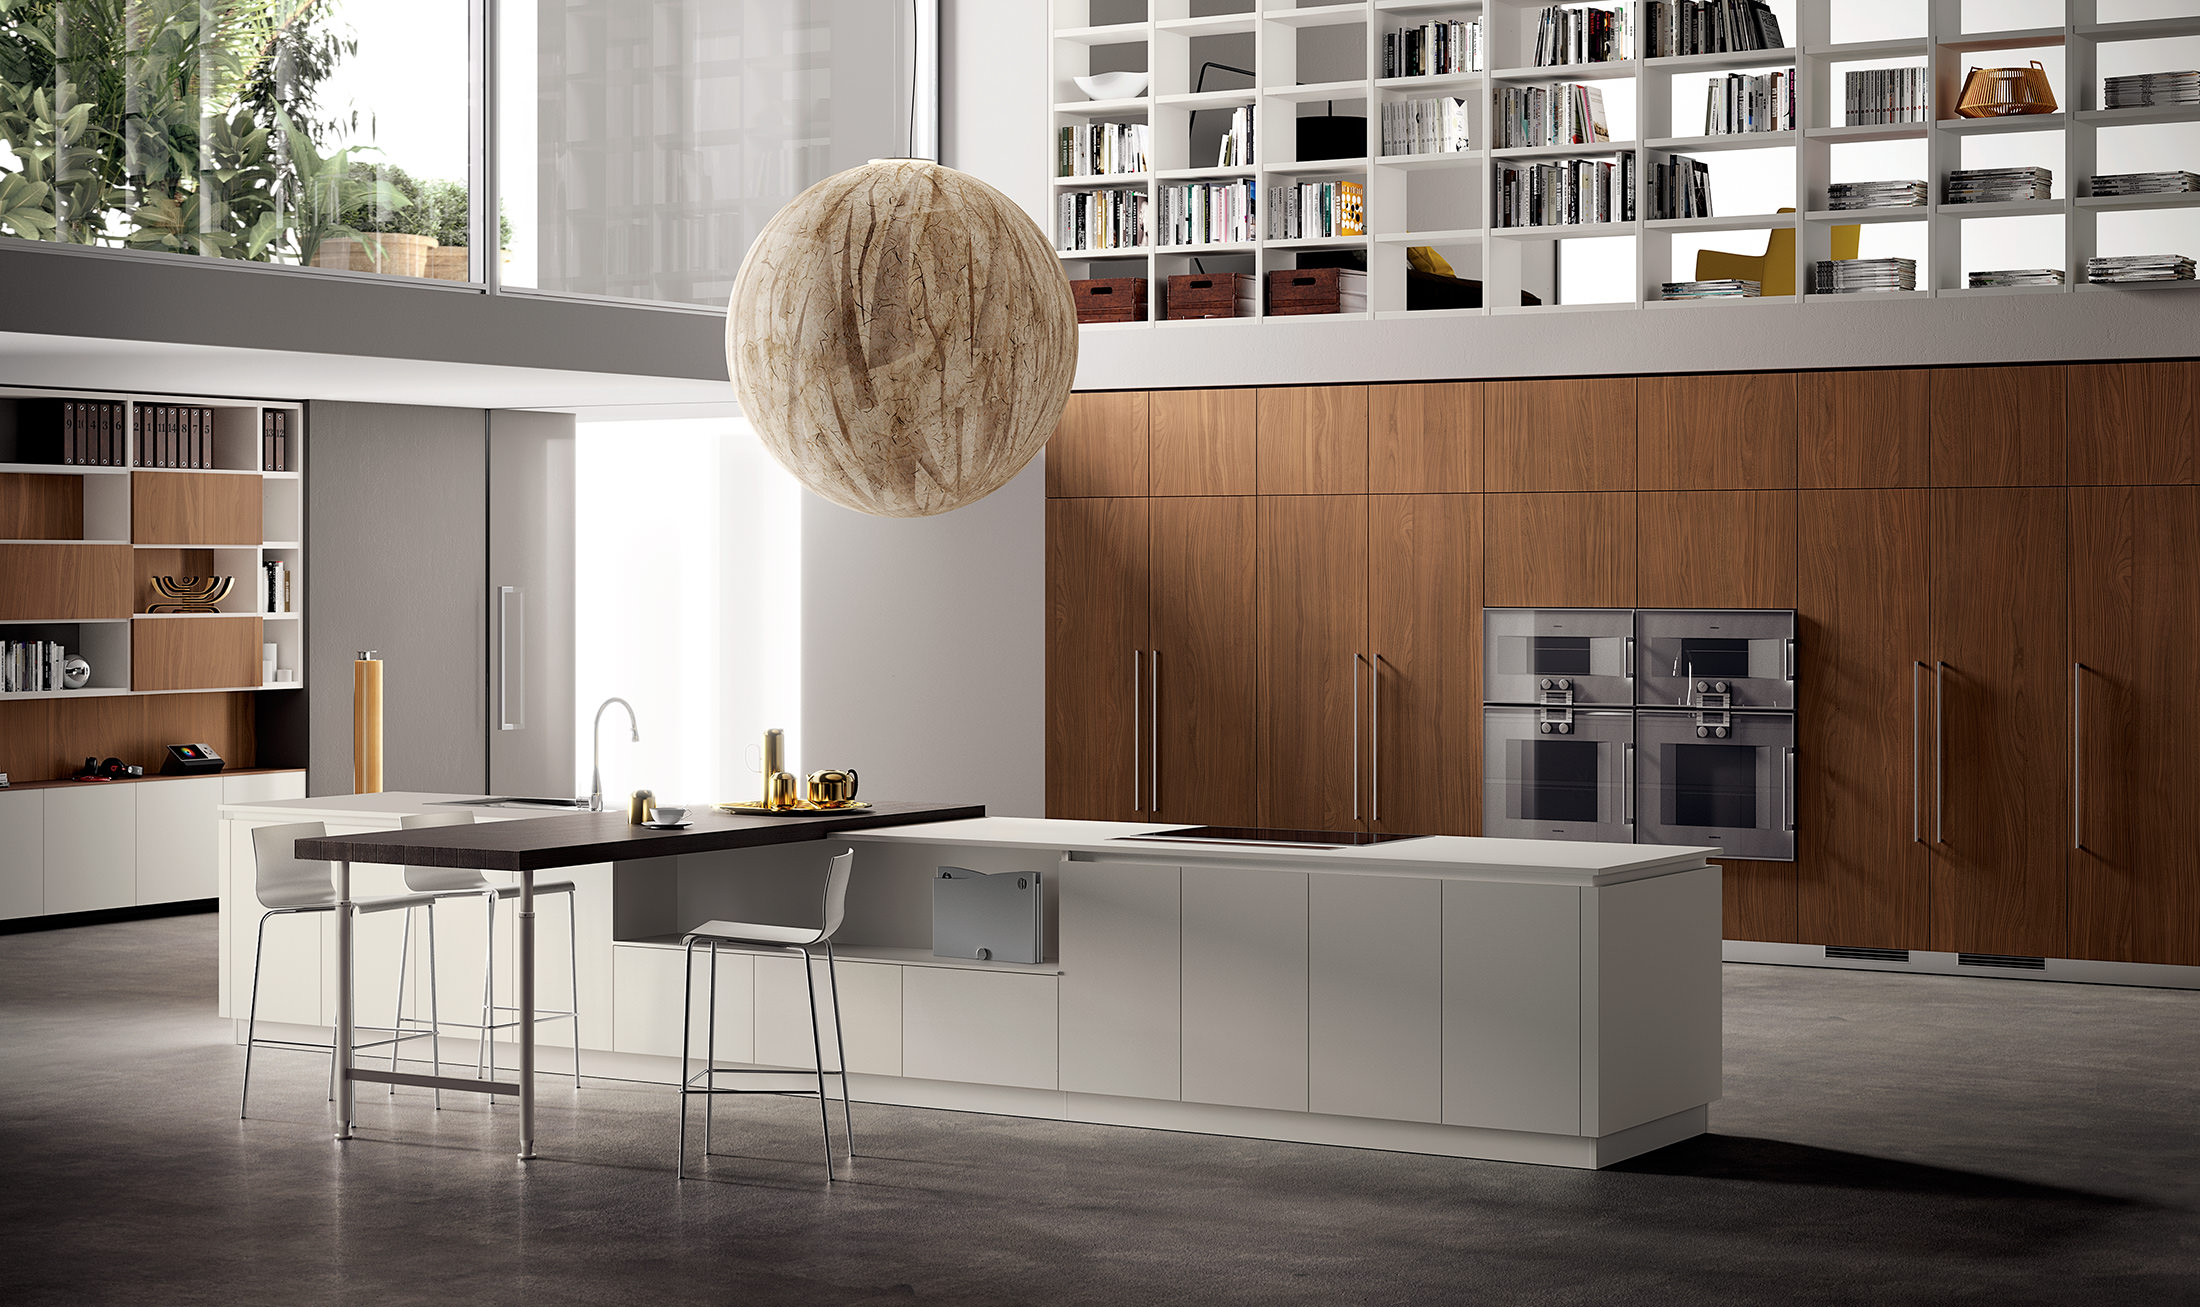 The Scavolini Kitchen | NUVO